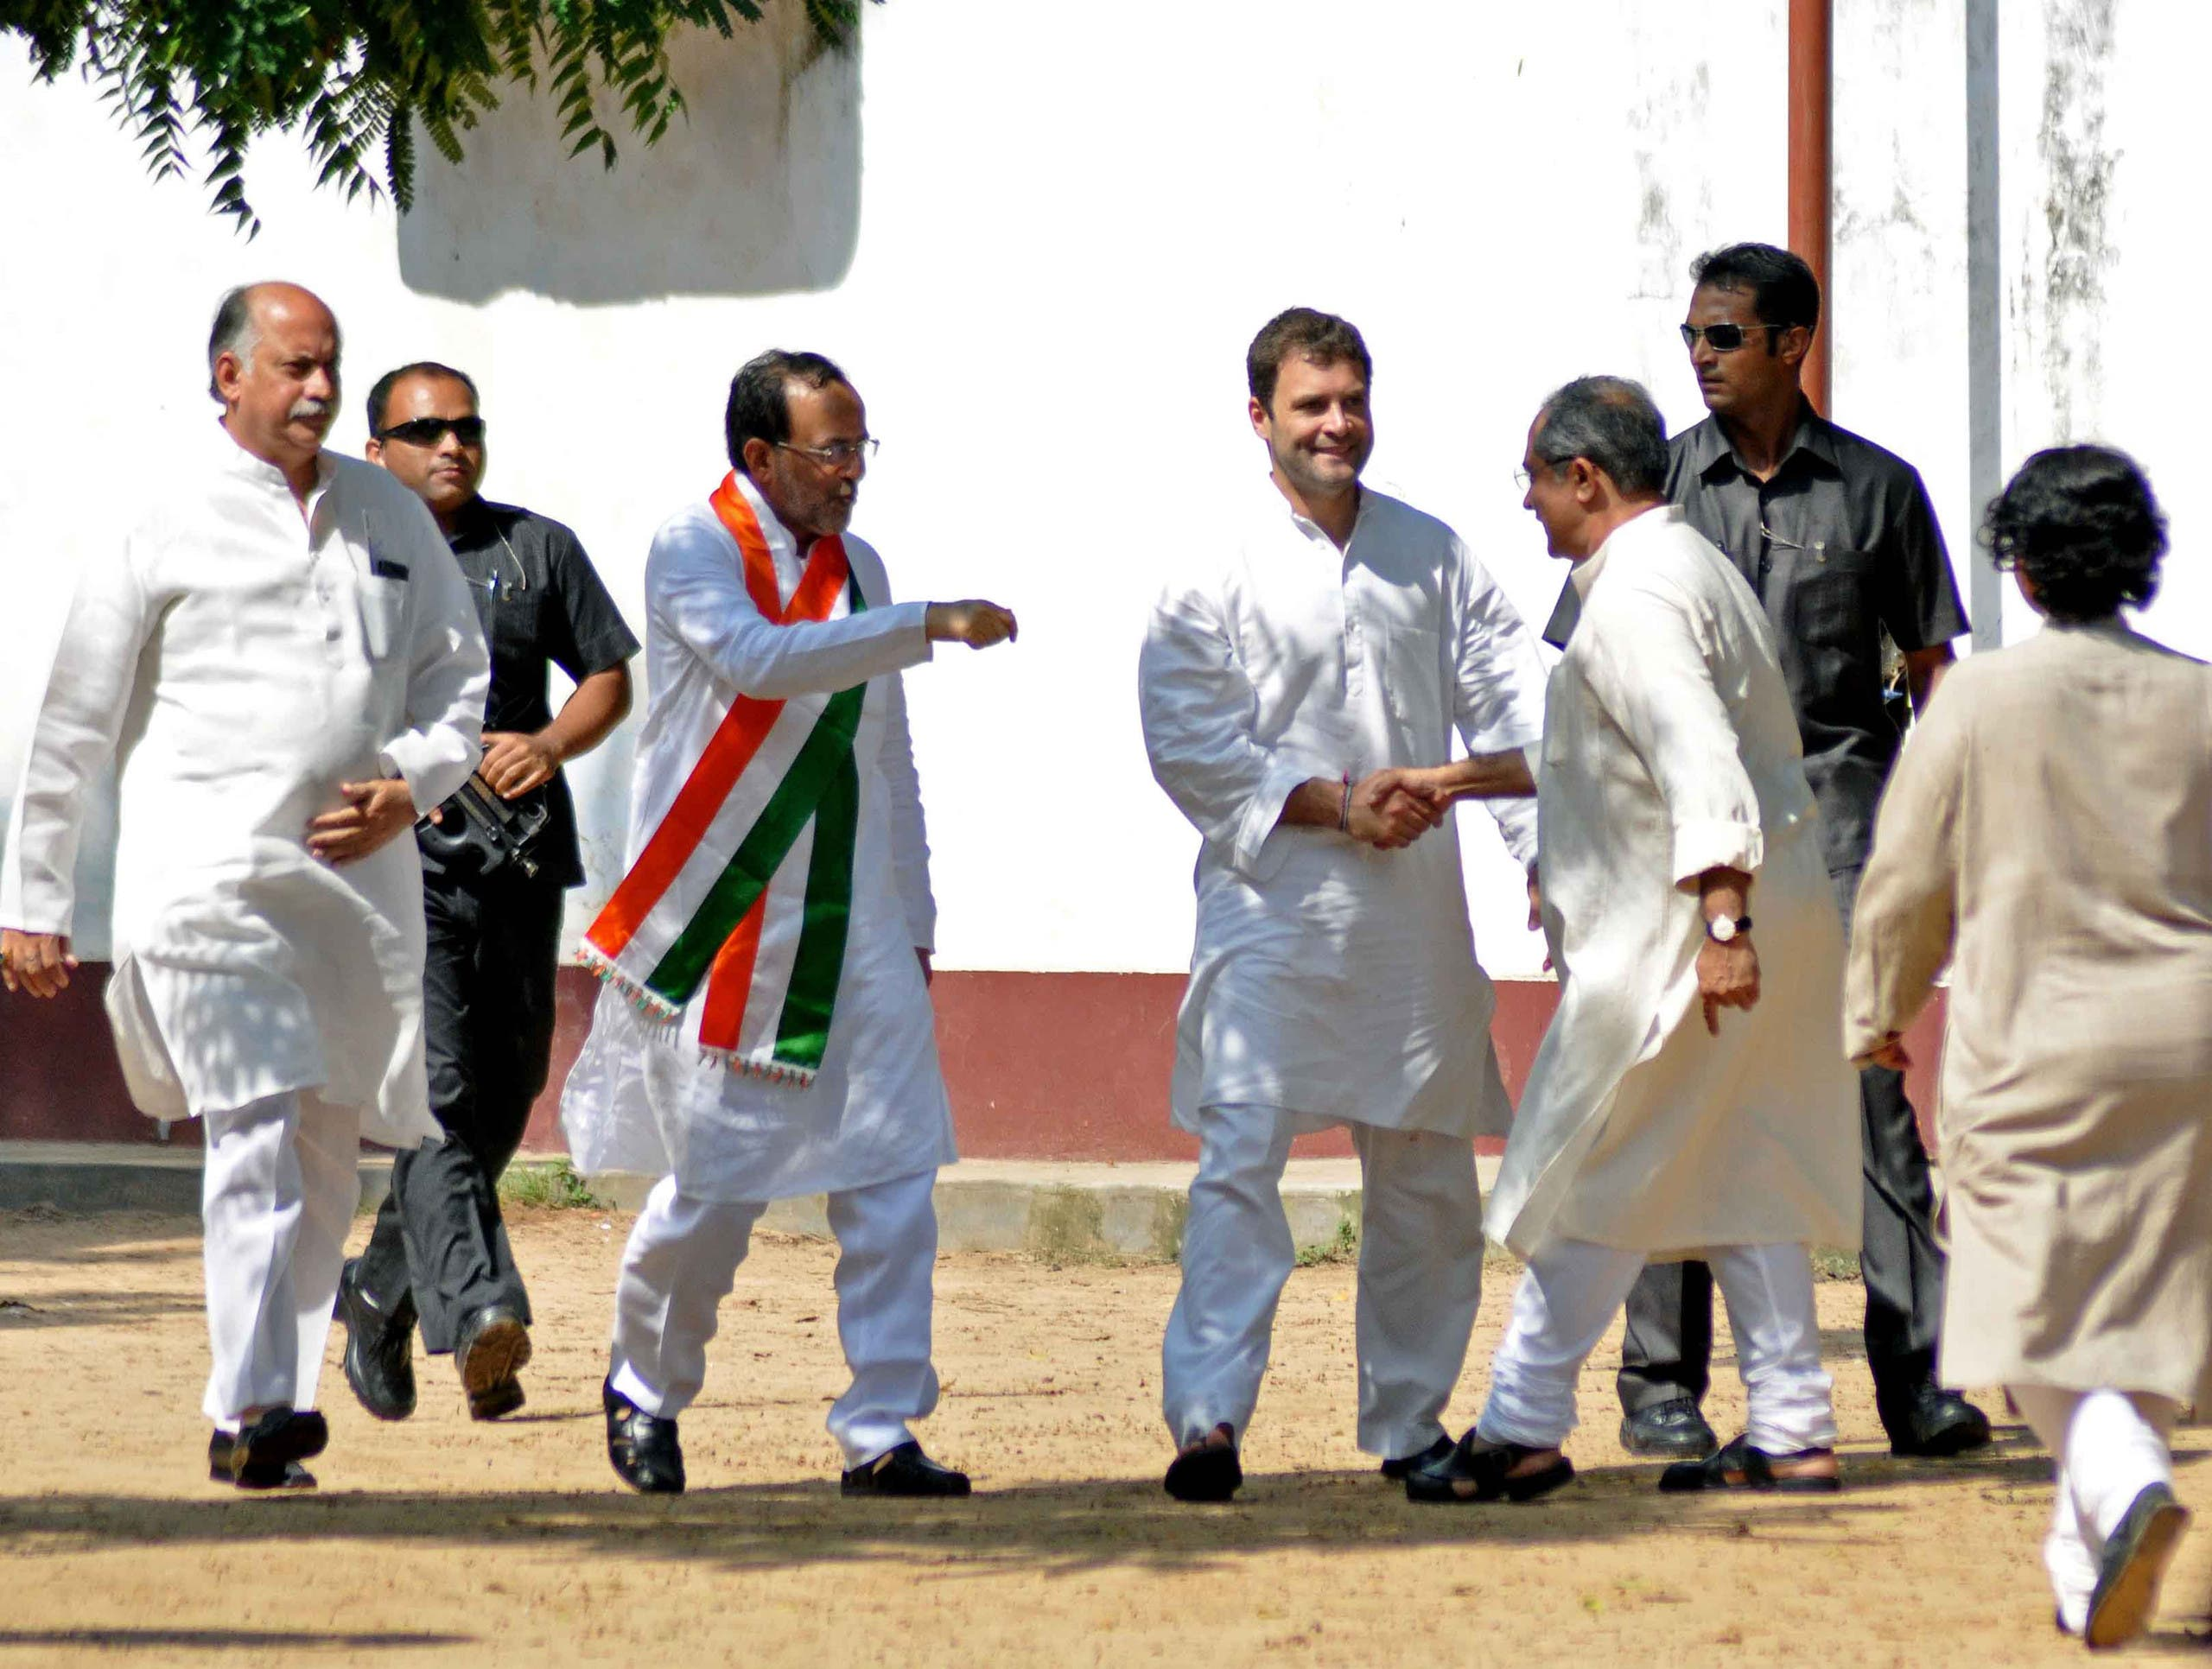 Rahul Gandhi's whirlwind campaigning may help the Congress win the day. (Supplied)